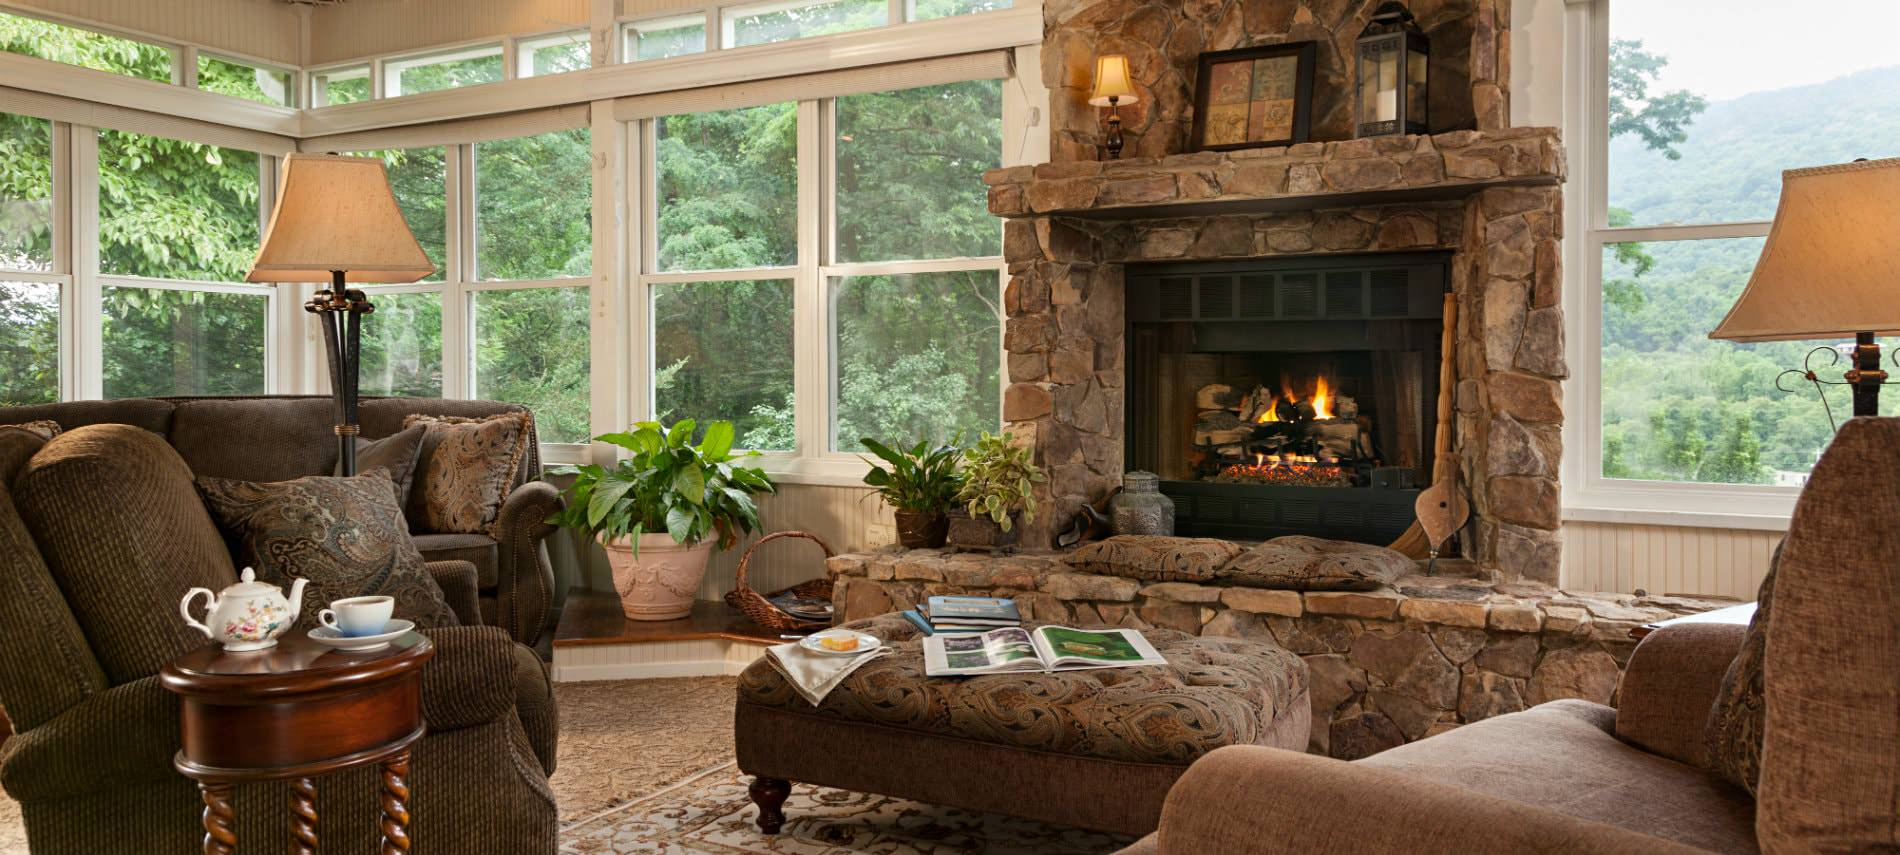 Beautiful sun room surrounded with windows, large stone hearth and fireplace, upholstered furniture and lush green views